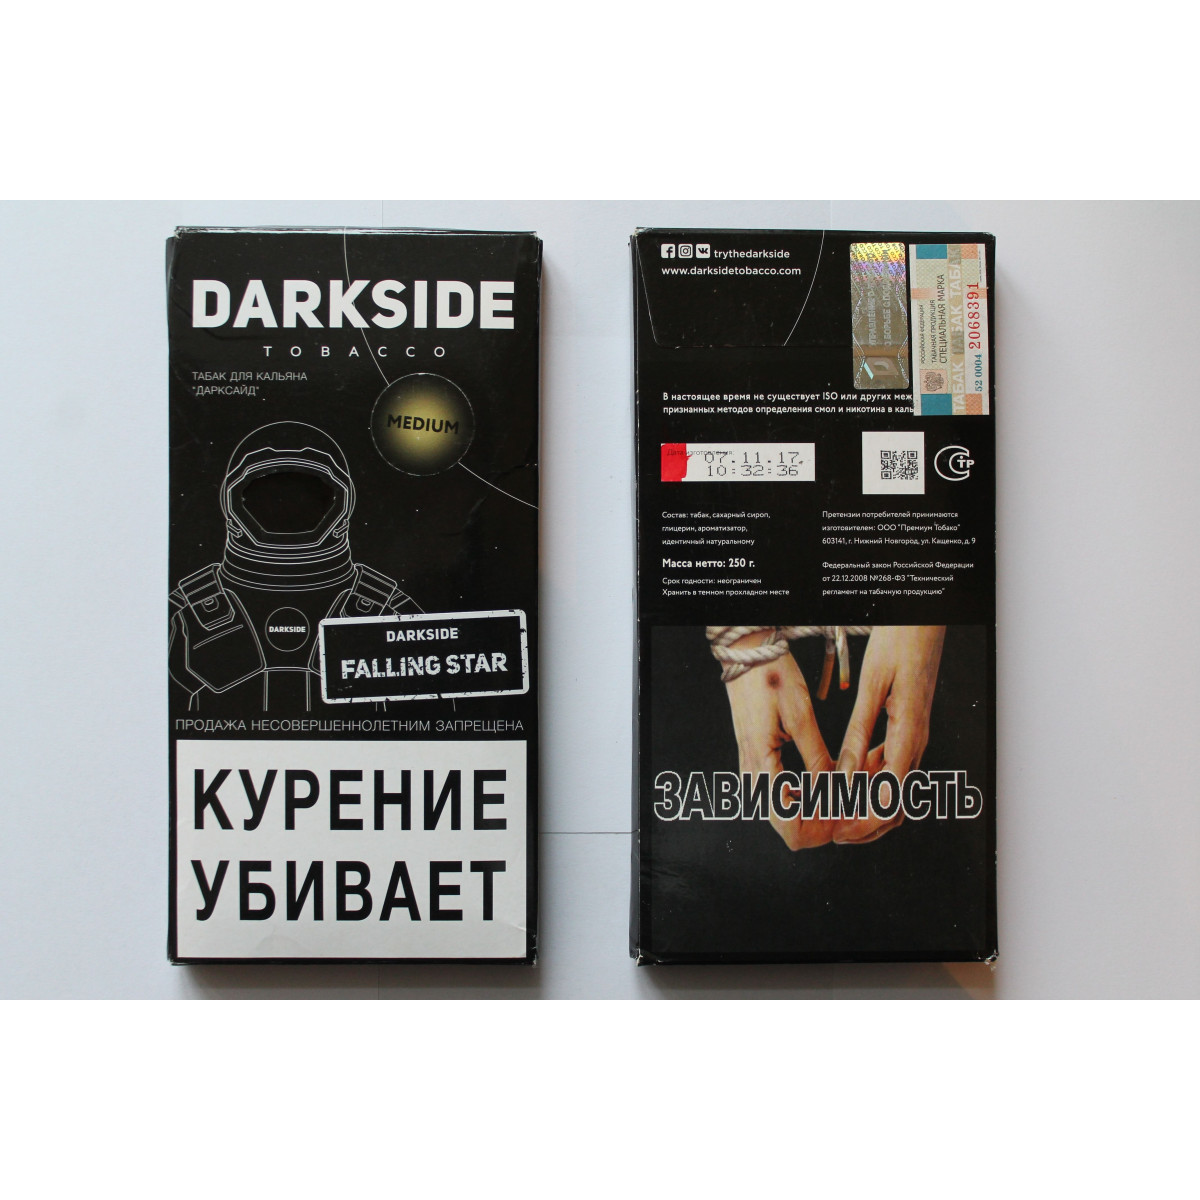 Табак Dark Side Falling Star (Дарксайд Манго Маракуйя) 250 грамм